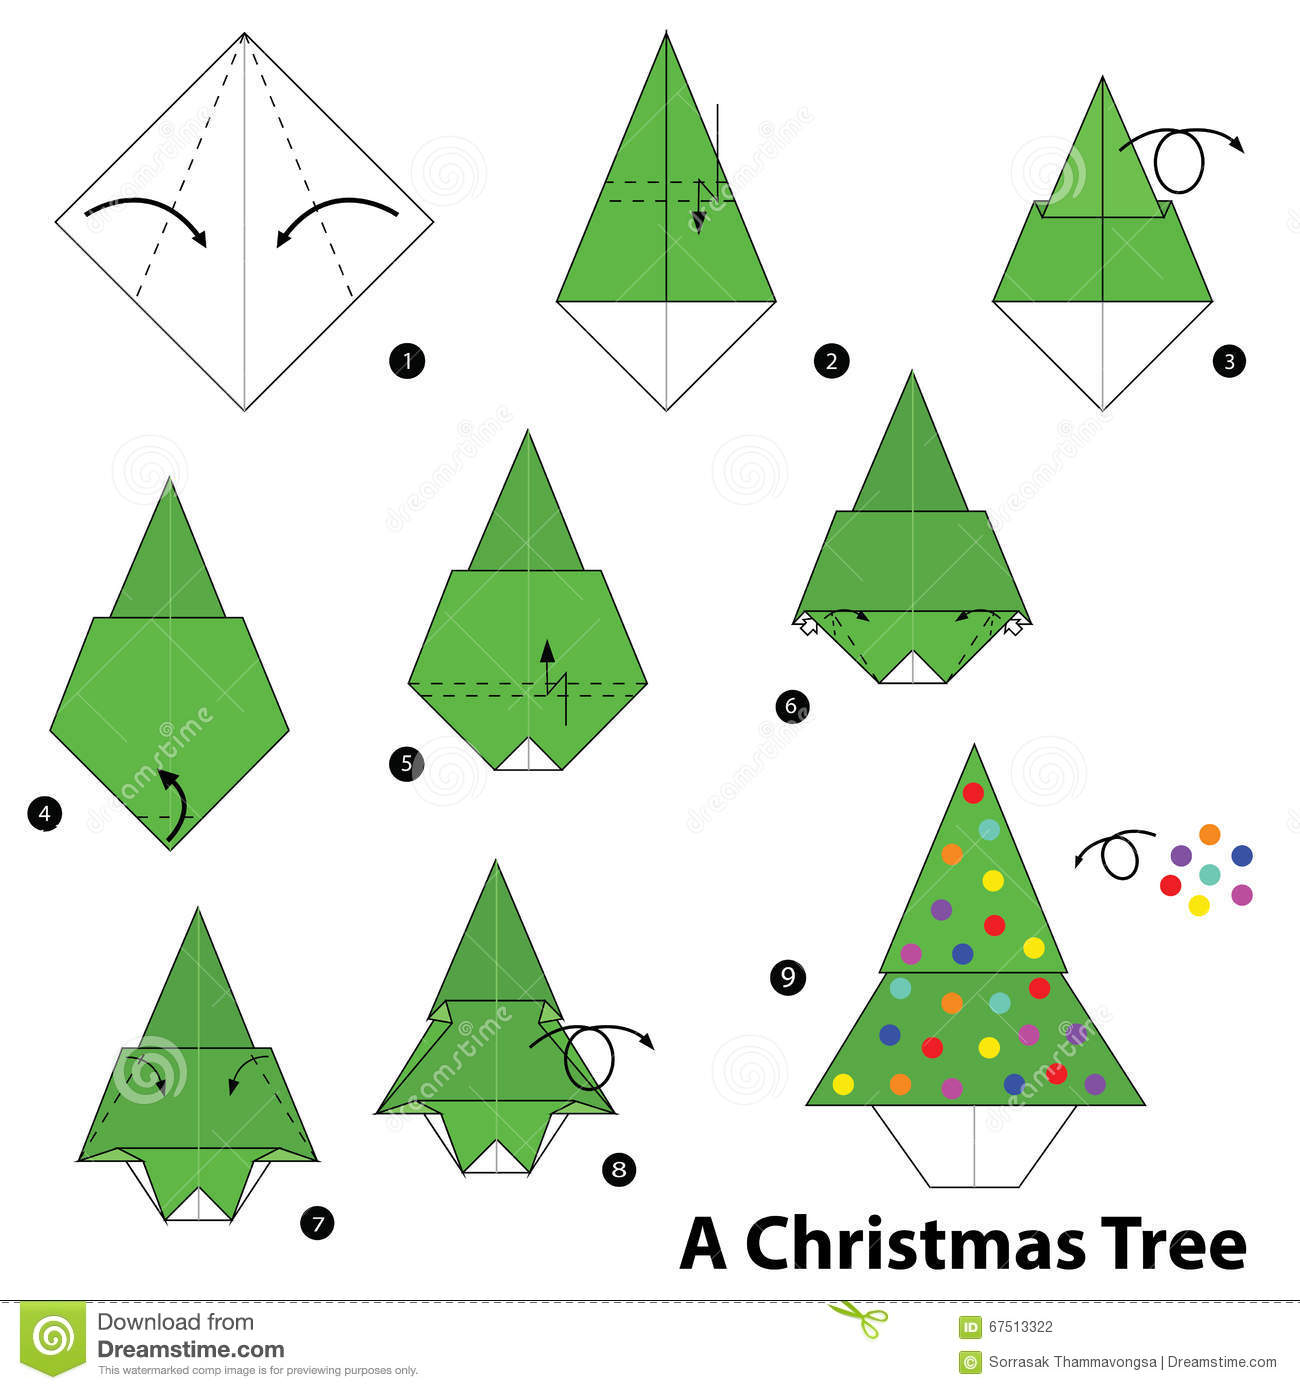 Origami CHRISTMAS TREE  Easy Folding Instructions for Kids